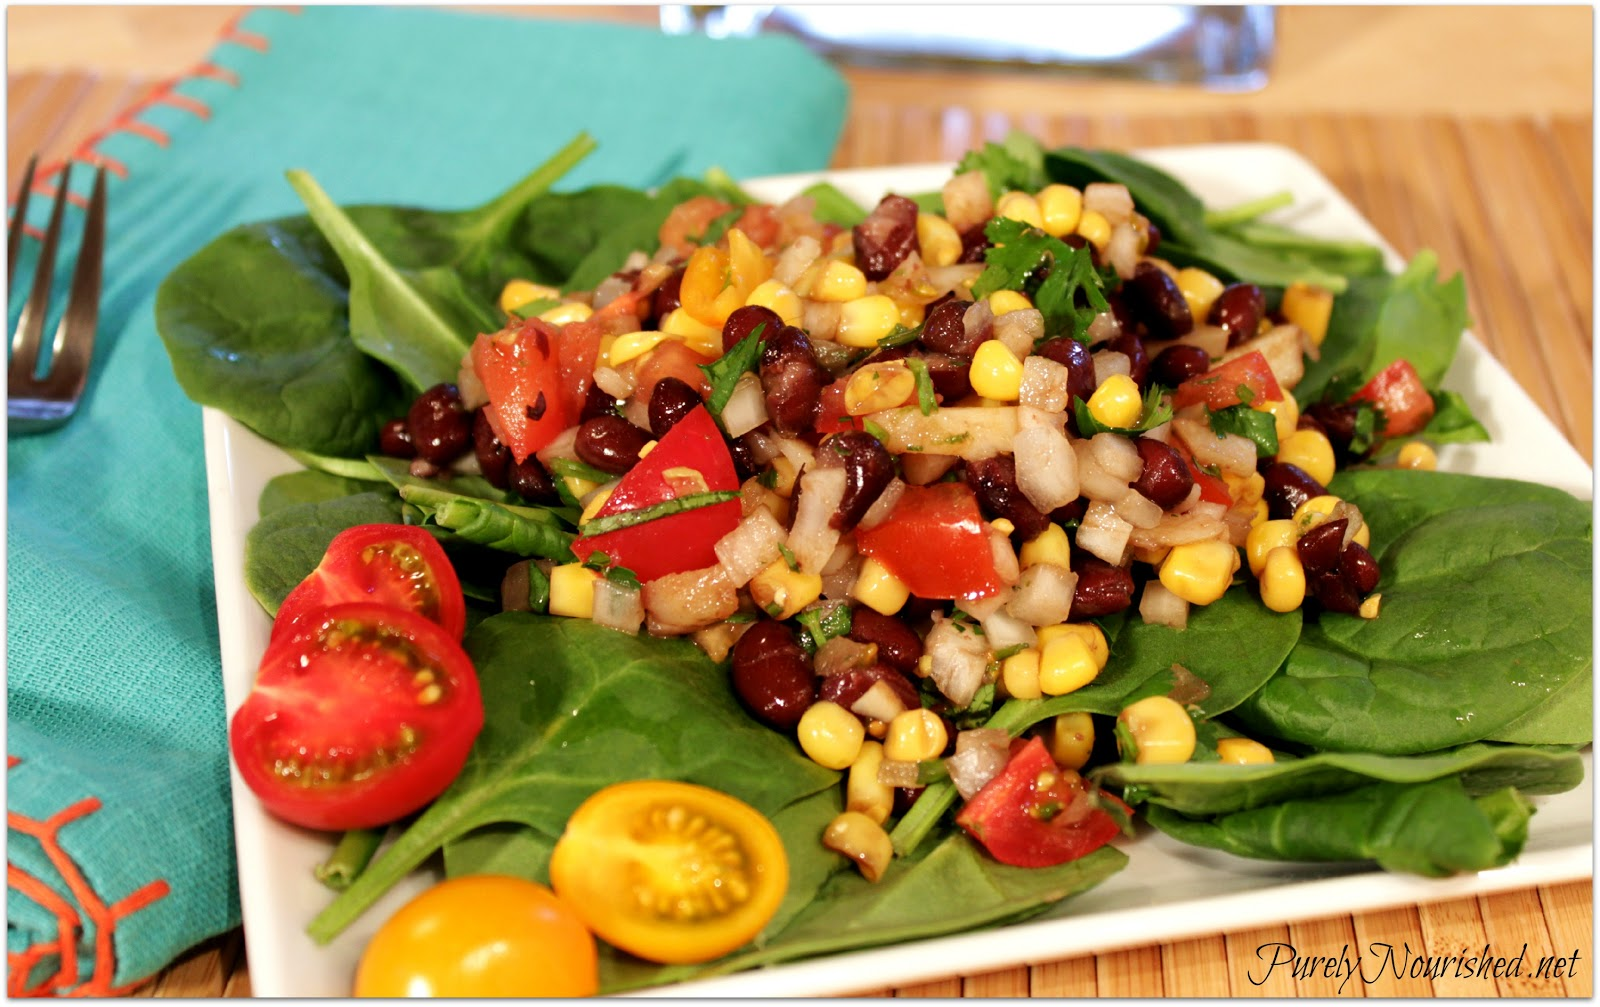 Purely Nourished: Quick Black Bean Salad